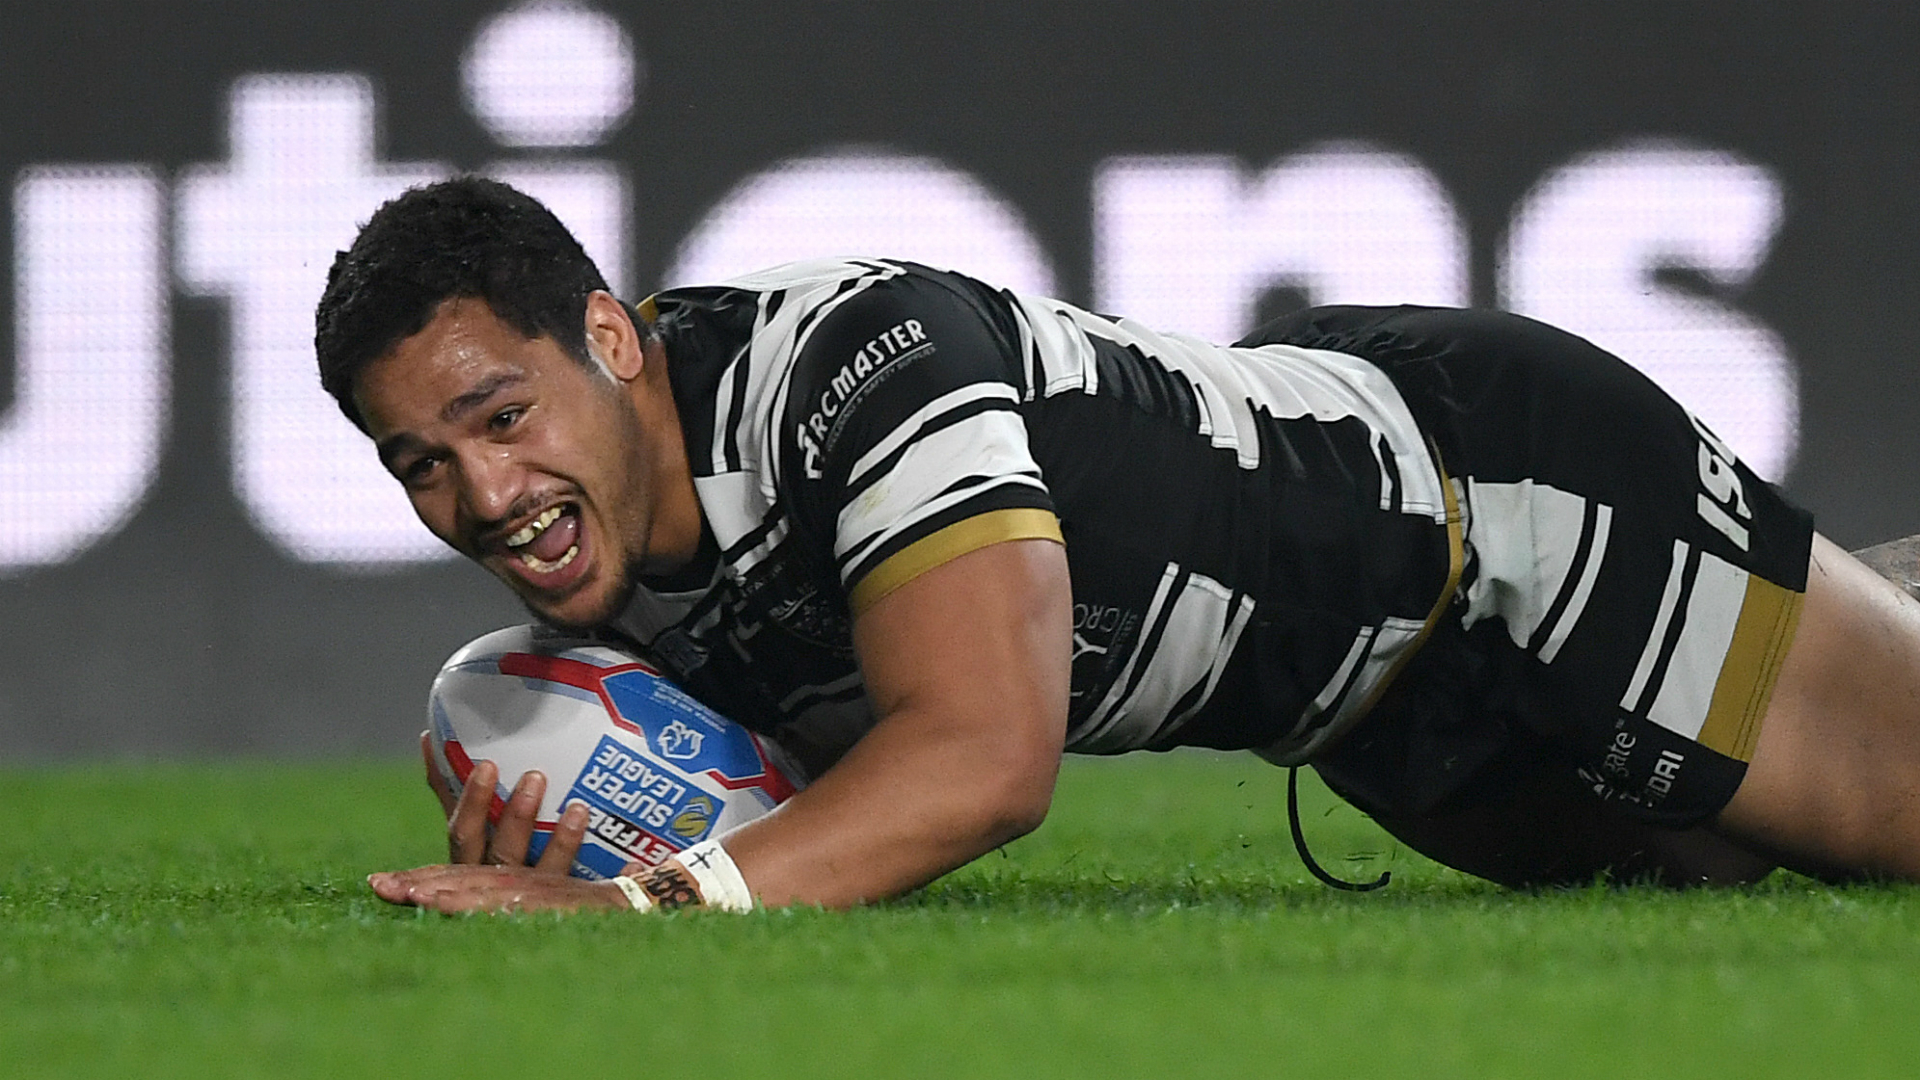 Hull FC surged 34-0 ahead before holding on for a 35-22 victory over Super League's basement dwellers on Thursday.